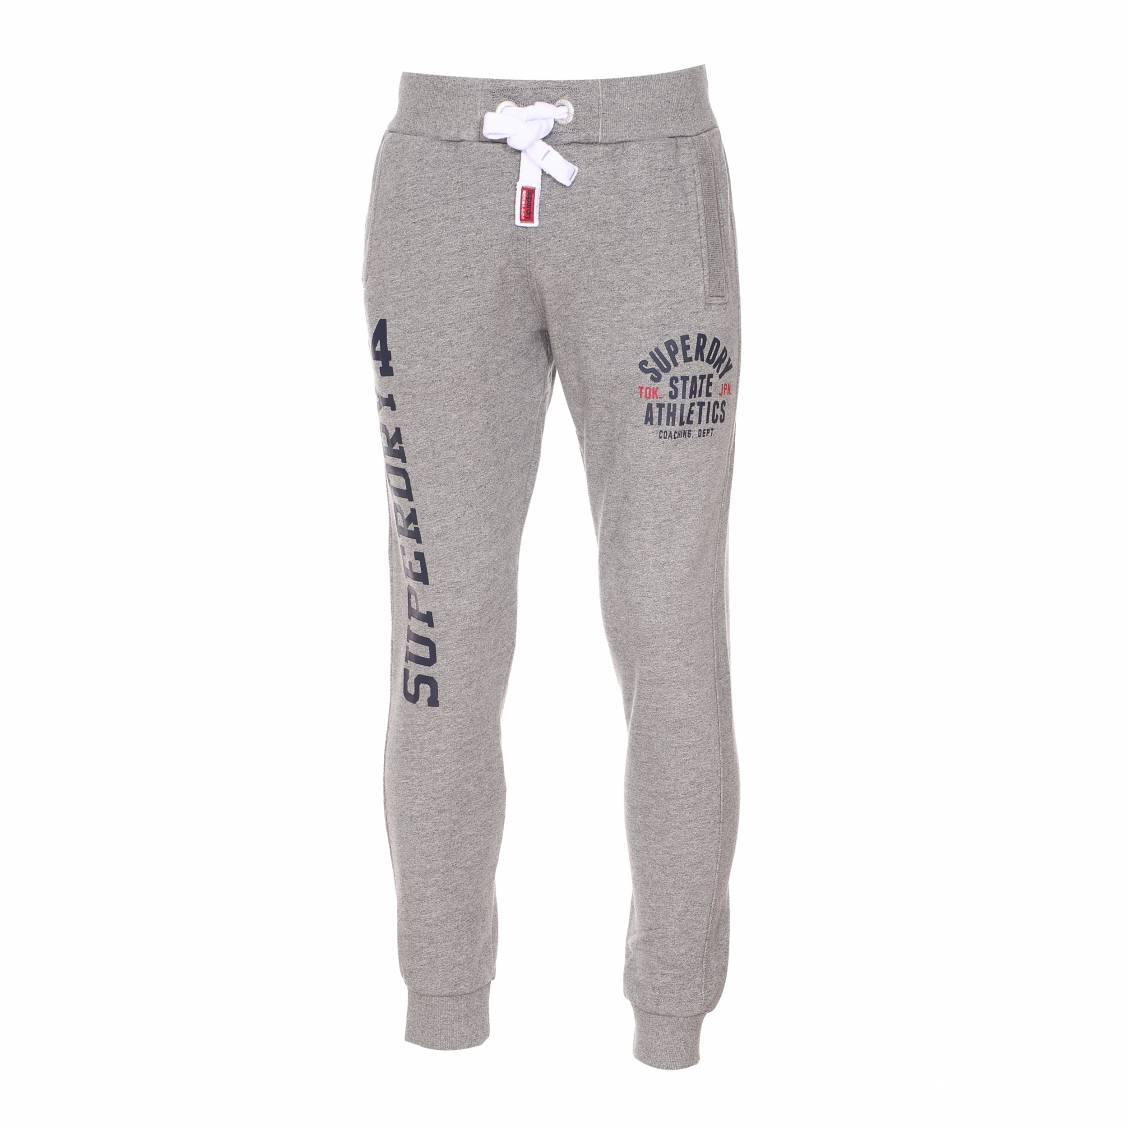 pantalon de jogging slim superdry gris clair chin rue des hommes. Black Bedroom Furniture Sets. Home Design Ideas